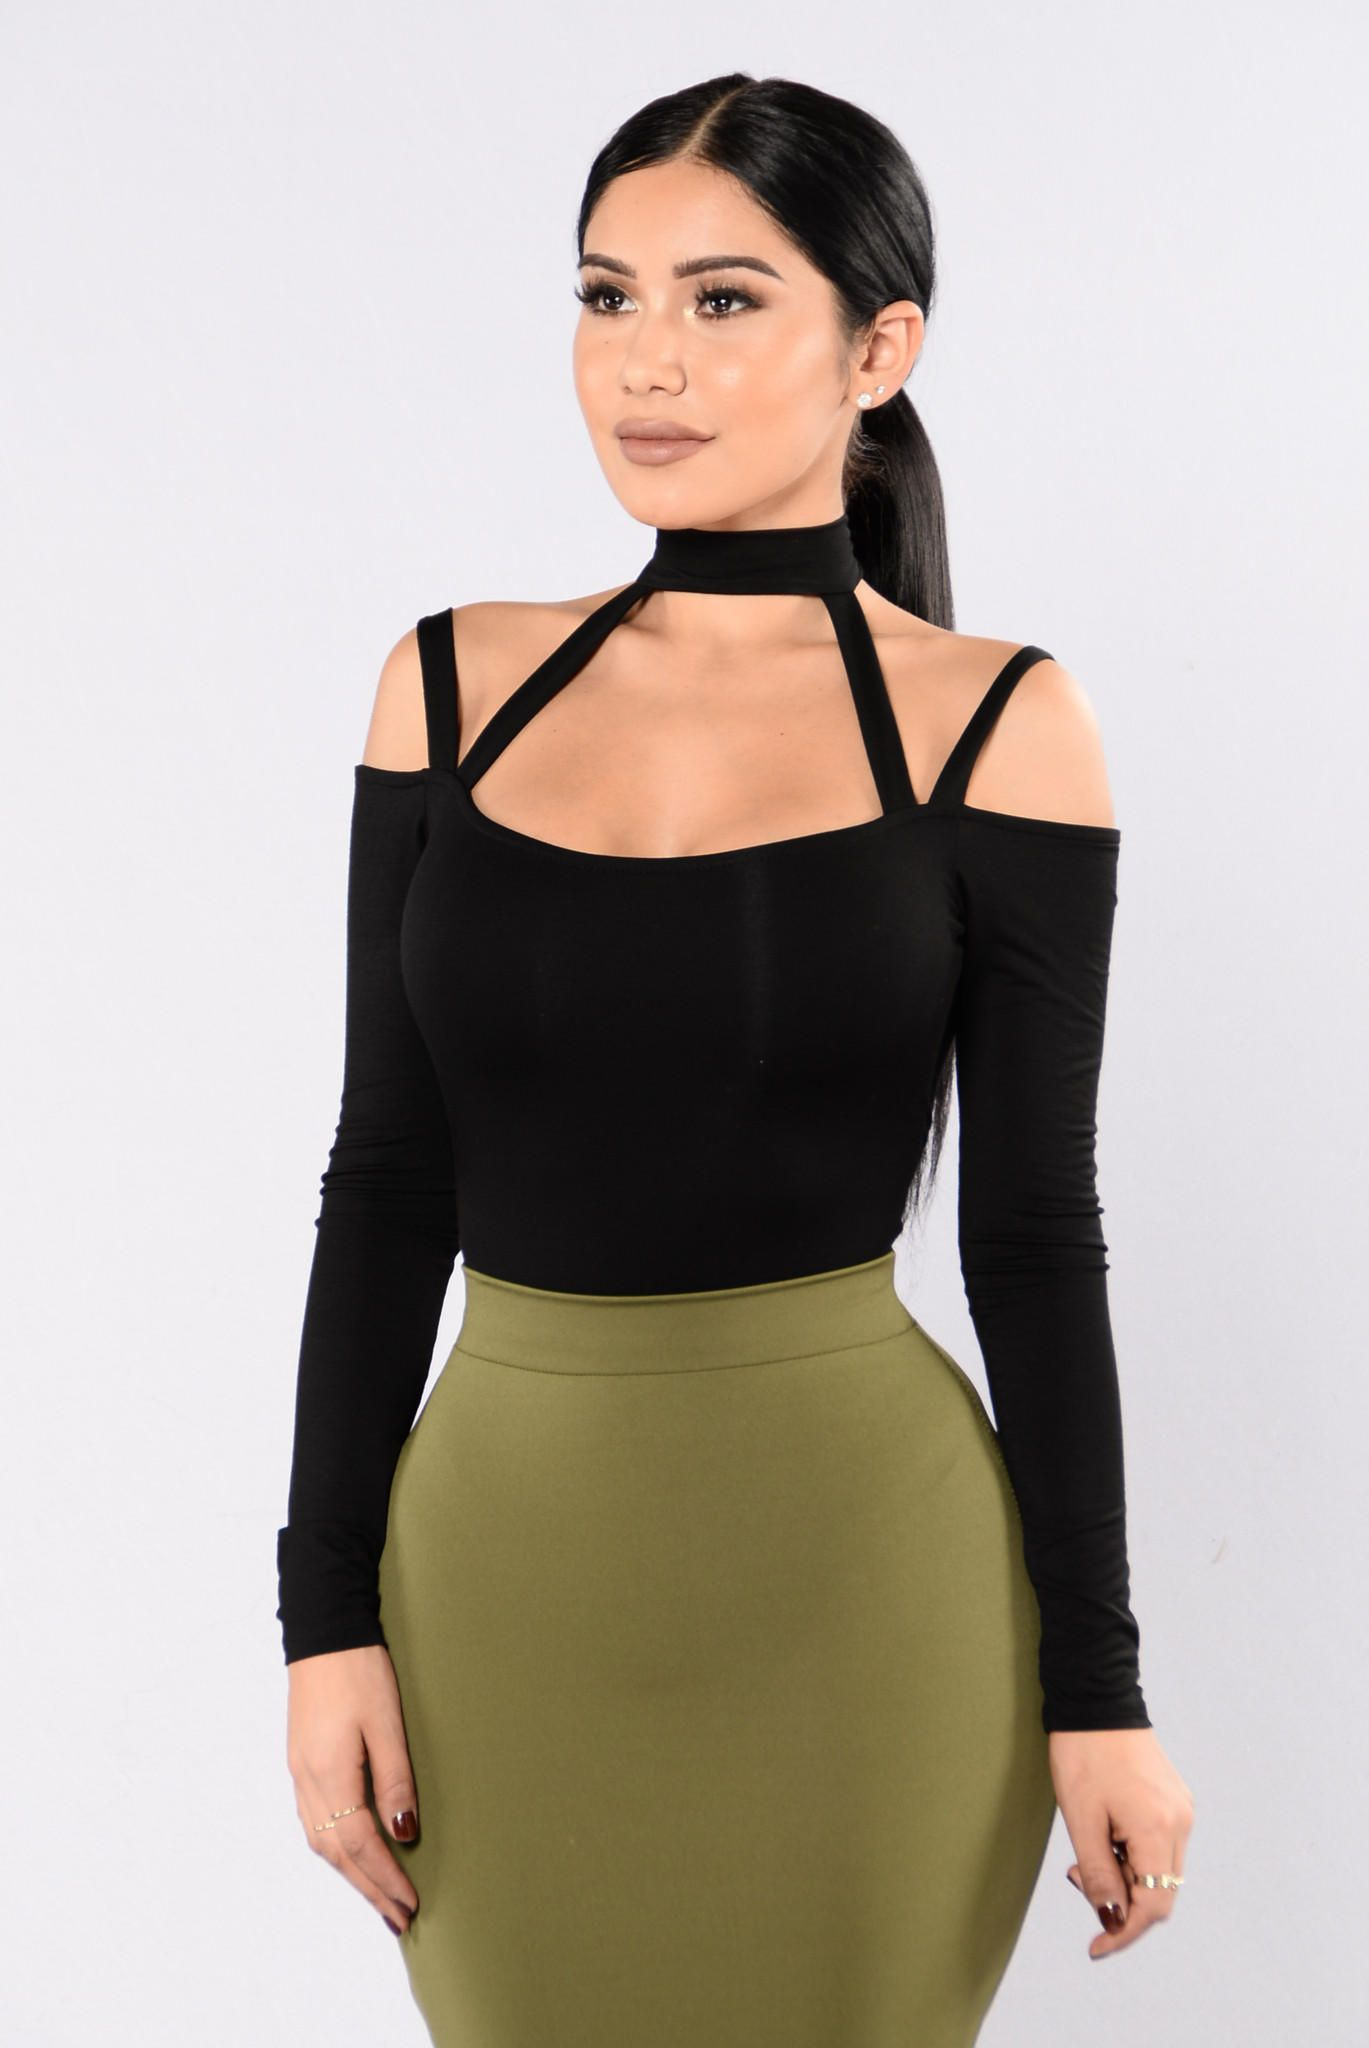 53adfb710ee784 High Hopes Bodysuit - Black from Fashion Nova. Saved to Quick Saves. Shop  more products from Fashion Nova on Wanelo.